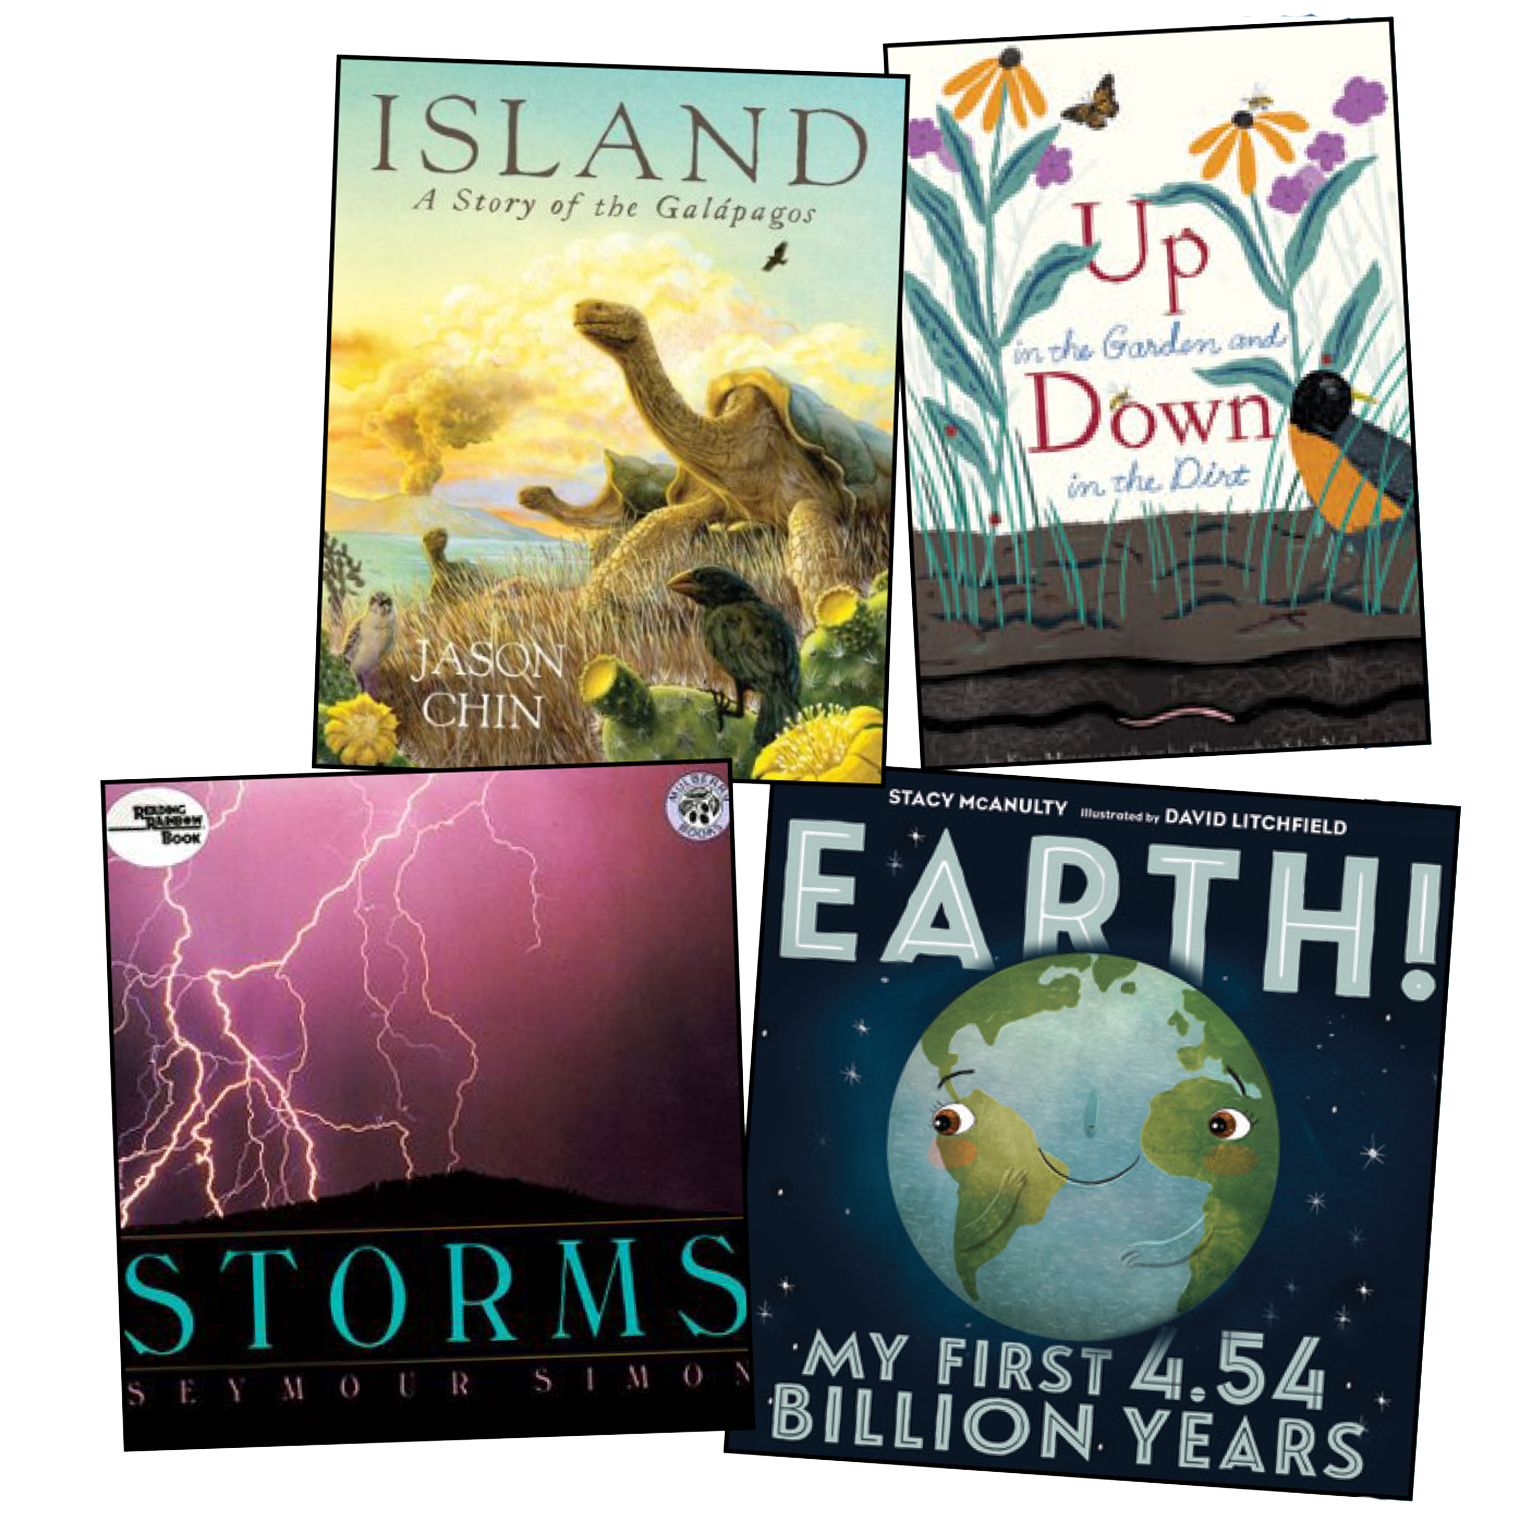 Expository nonfiction teaches the reader all about a topic. It includes factual information, descriptions, and visuals to help the reader learn about the topic. Many expository books are written about science and social studies topics.